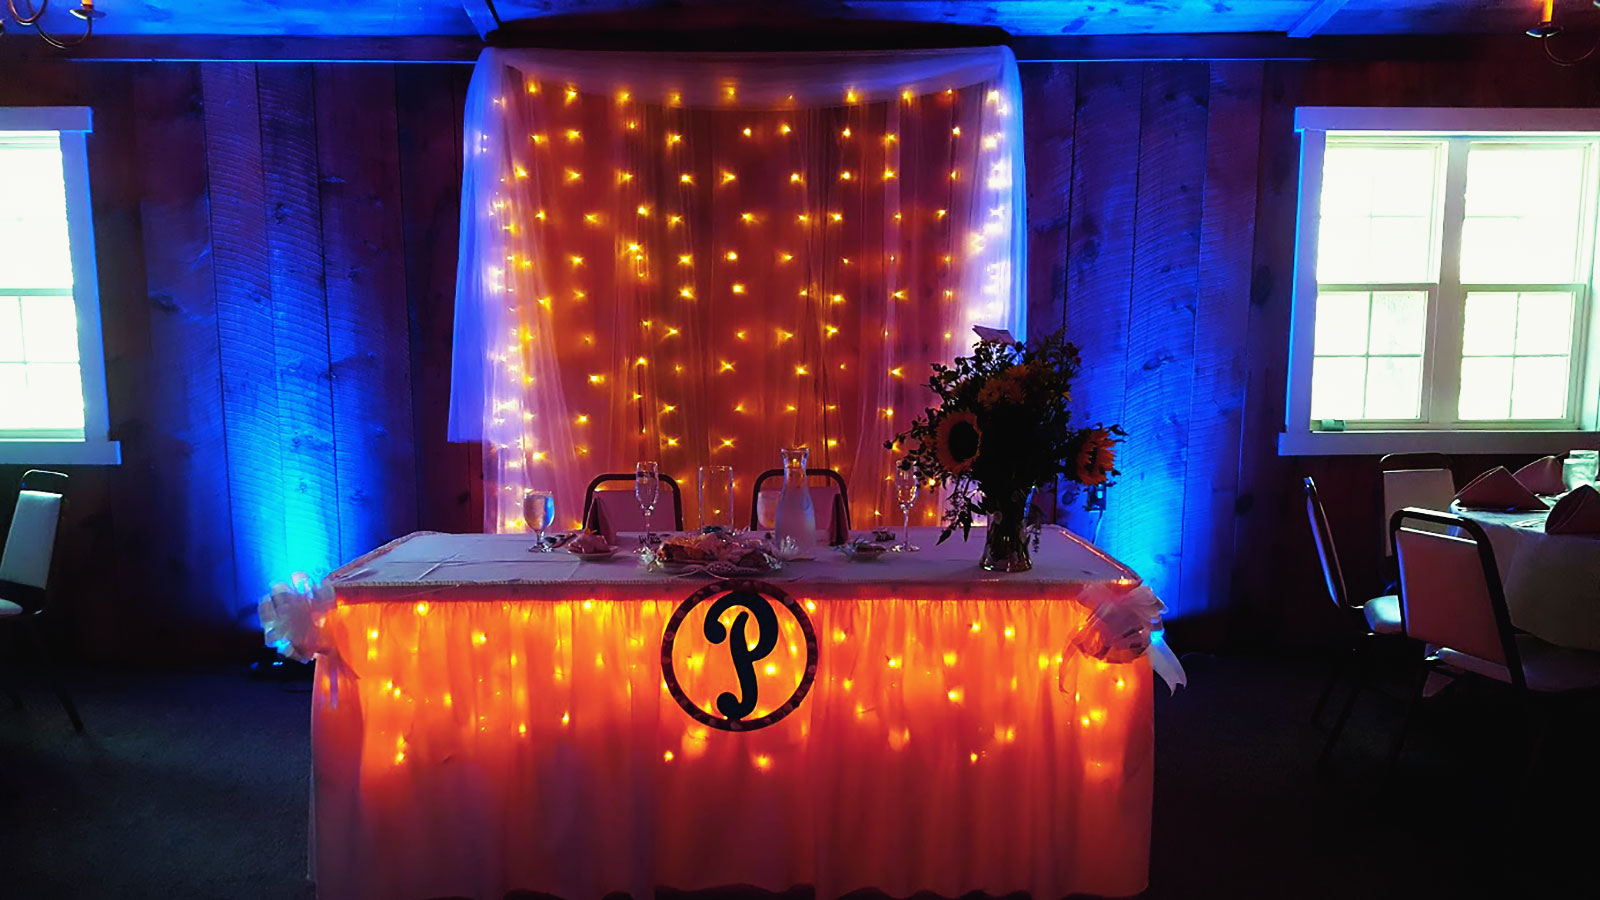 Wedding couple's table at reception